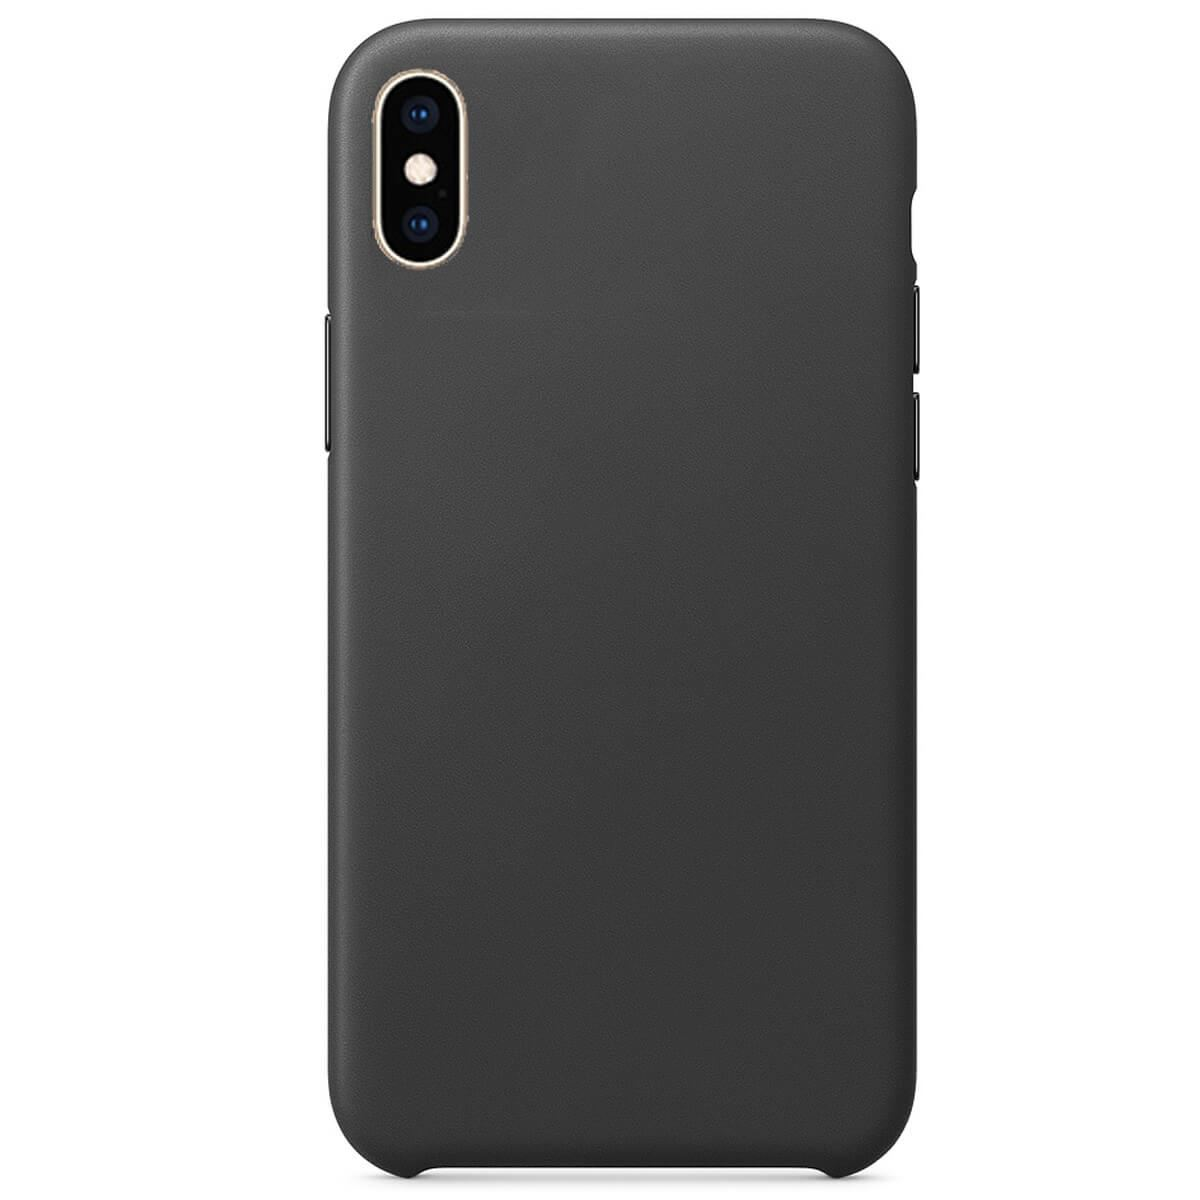 Liquid-Silicone-Shockproof-Case-For-Apple-iPhone-Soft-Matte-Back-Phone-Cover thumbnail 6